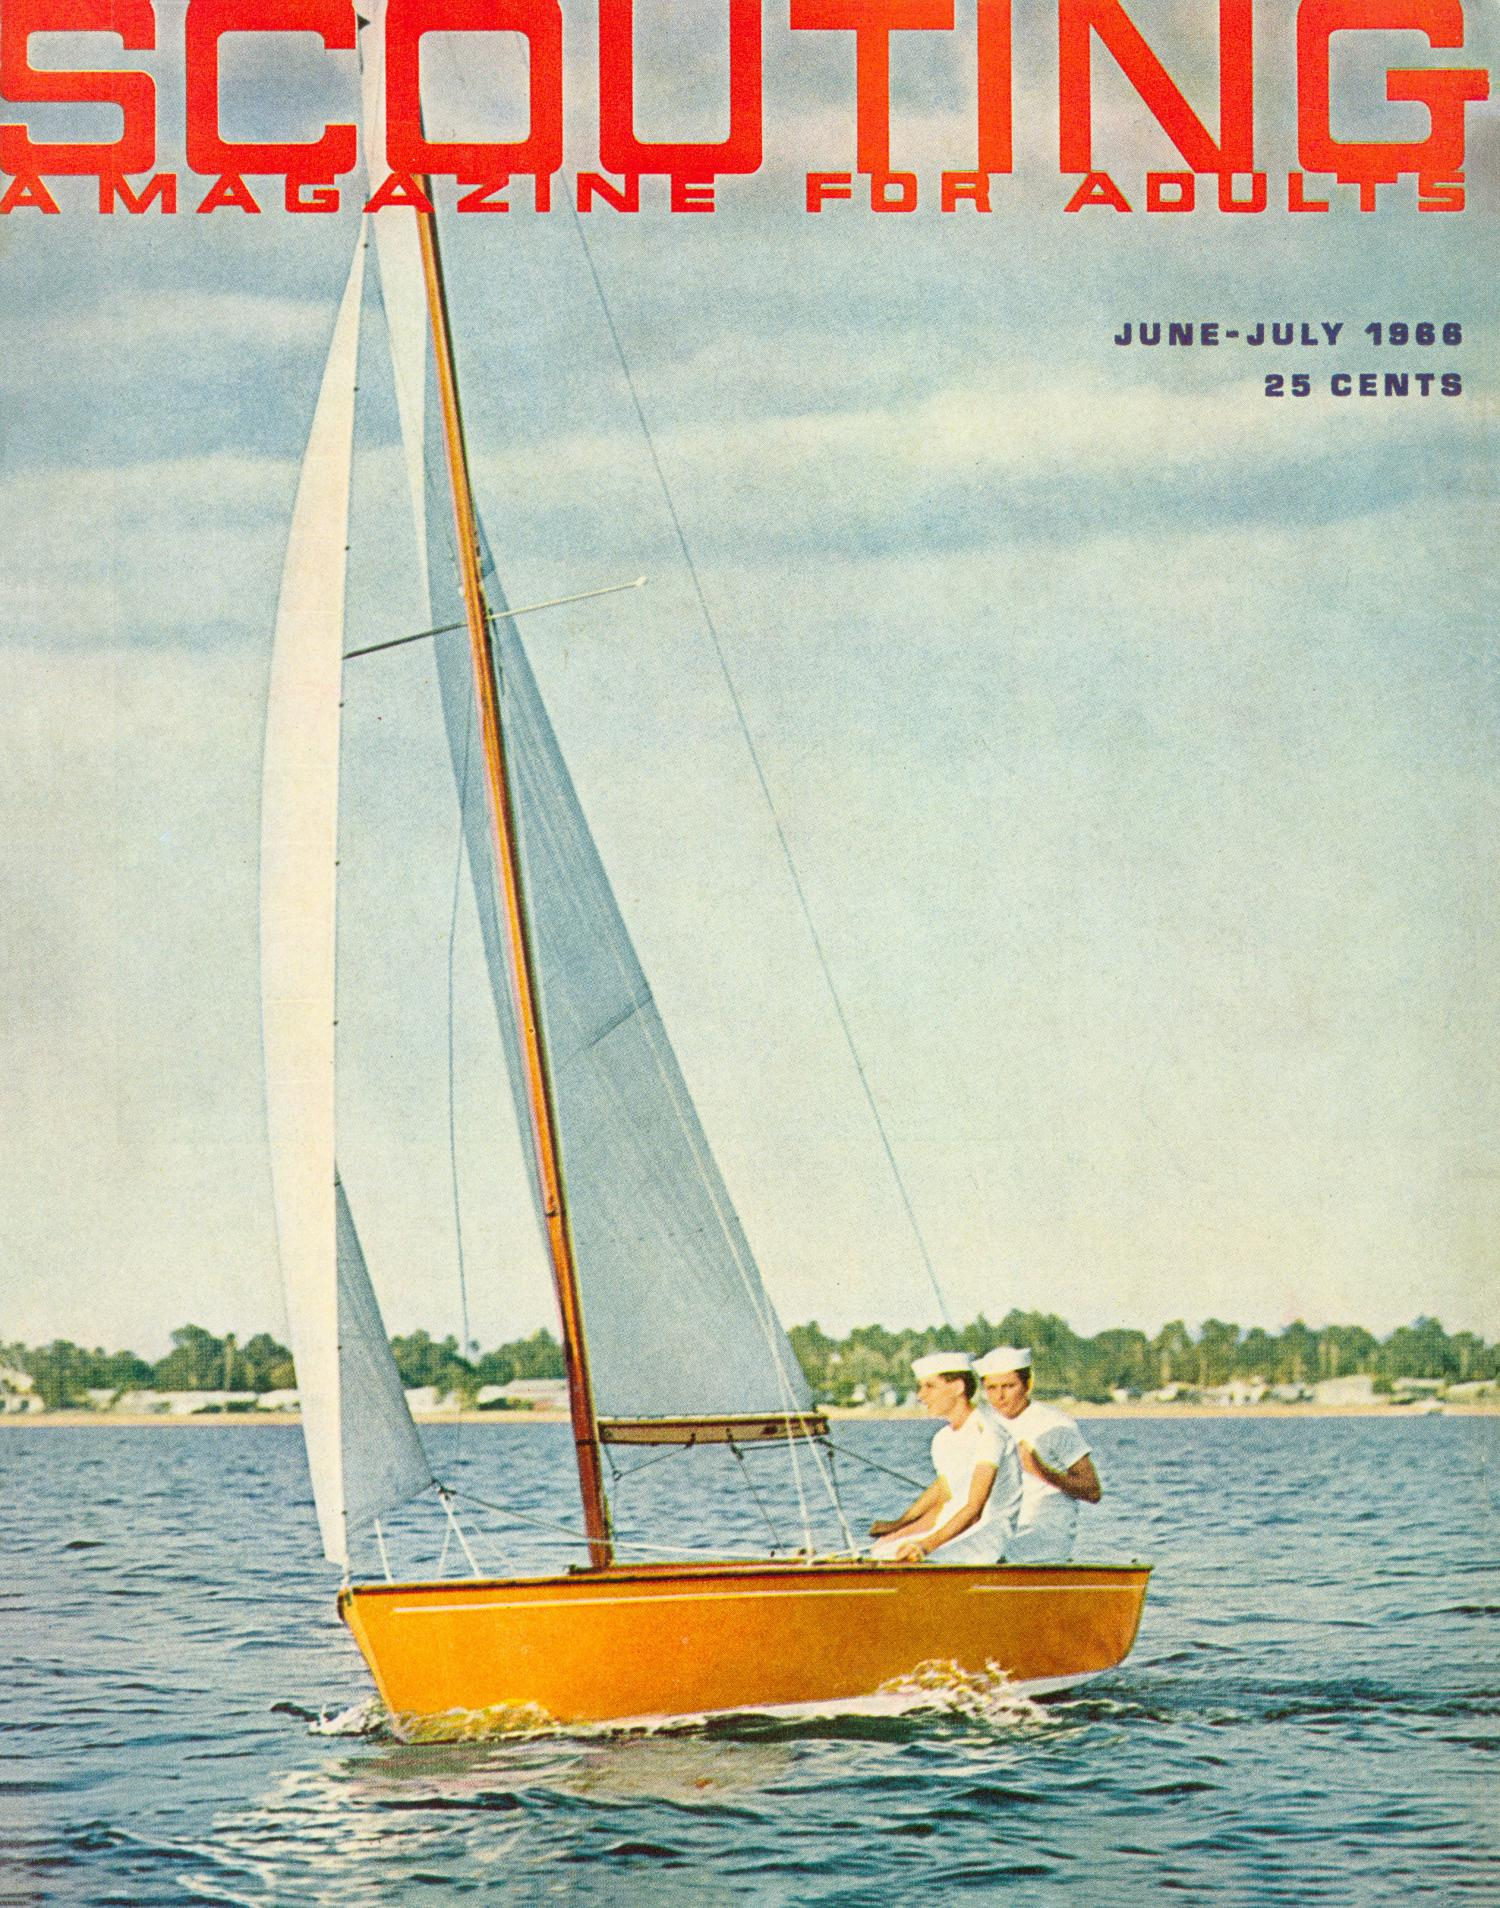 Scouting, Volume 54, Number 6, June-July 1966                                                                                                      Front Cover